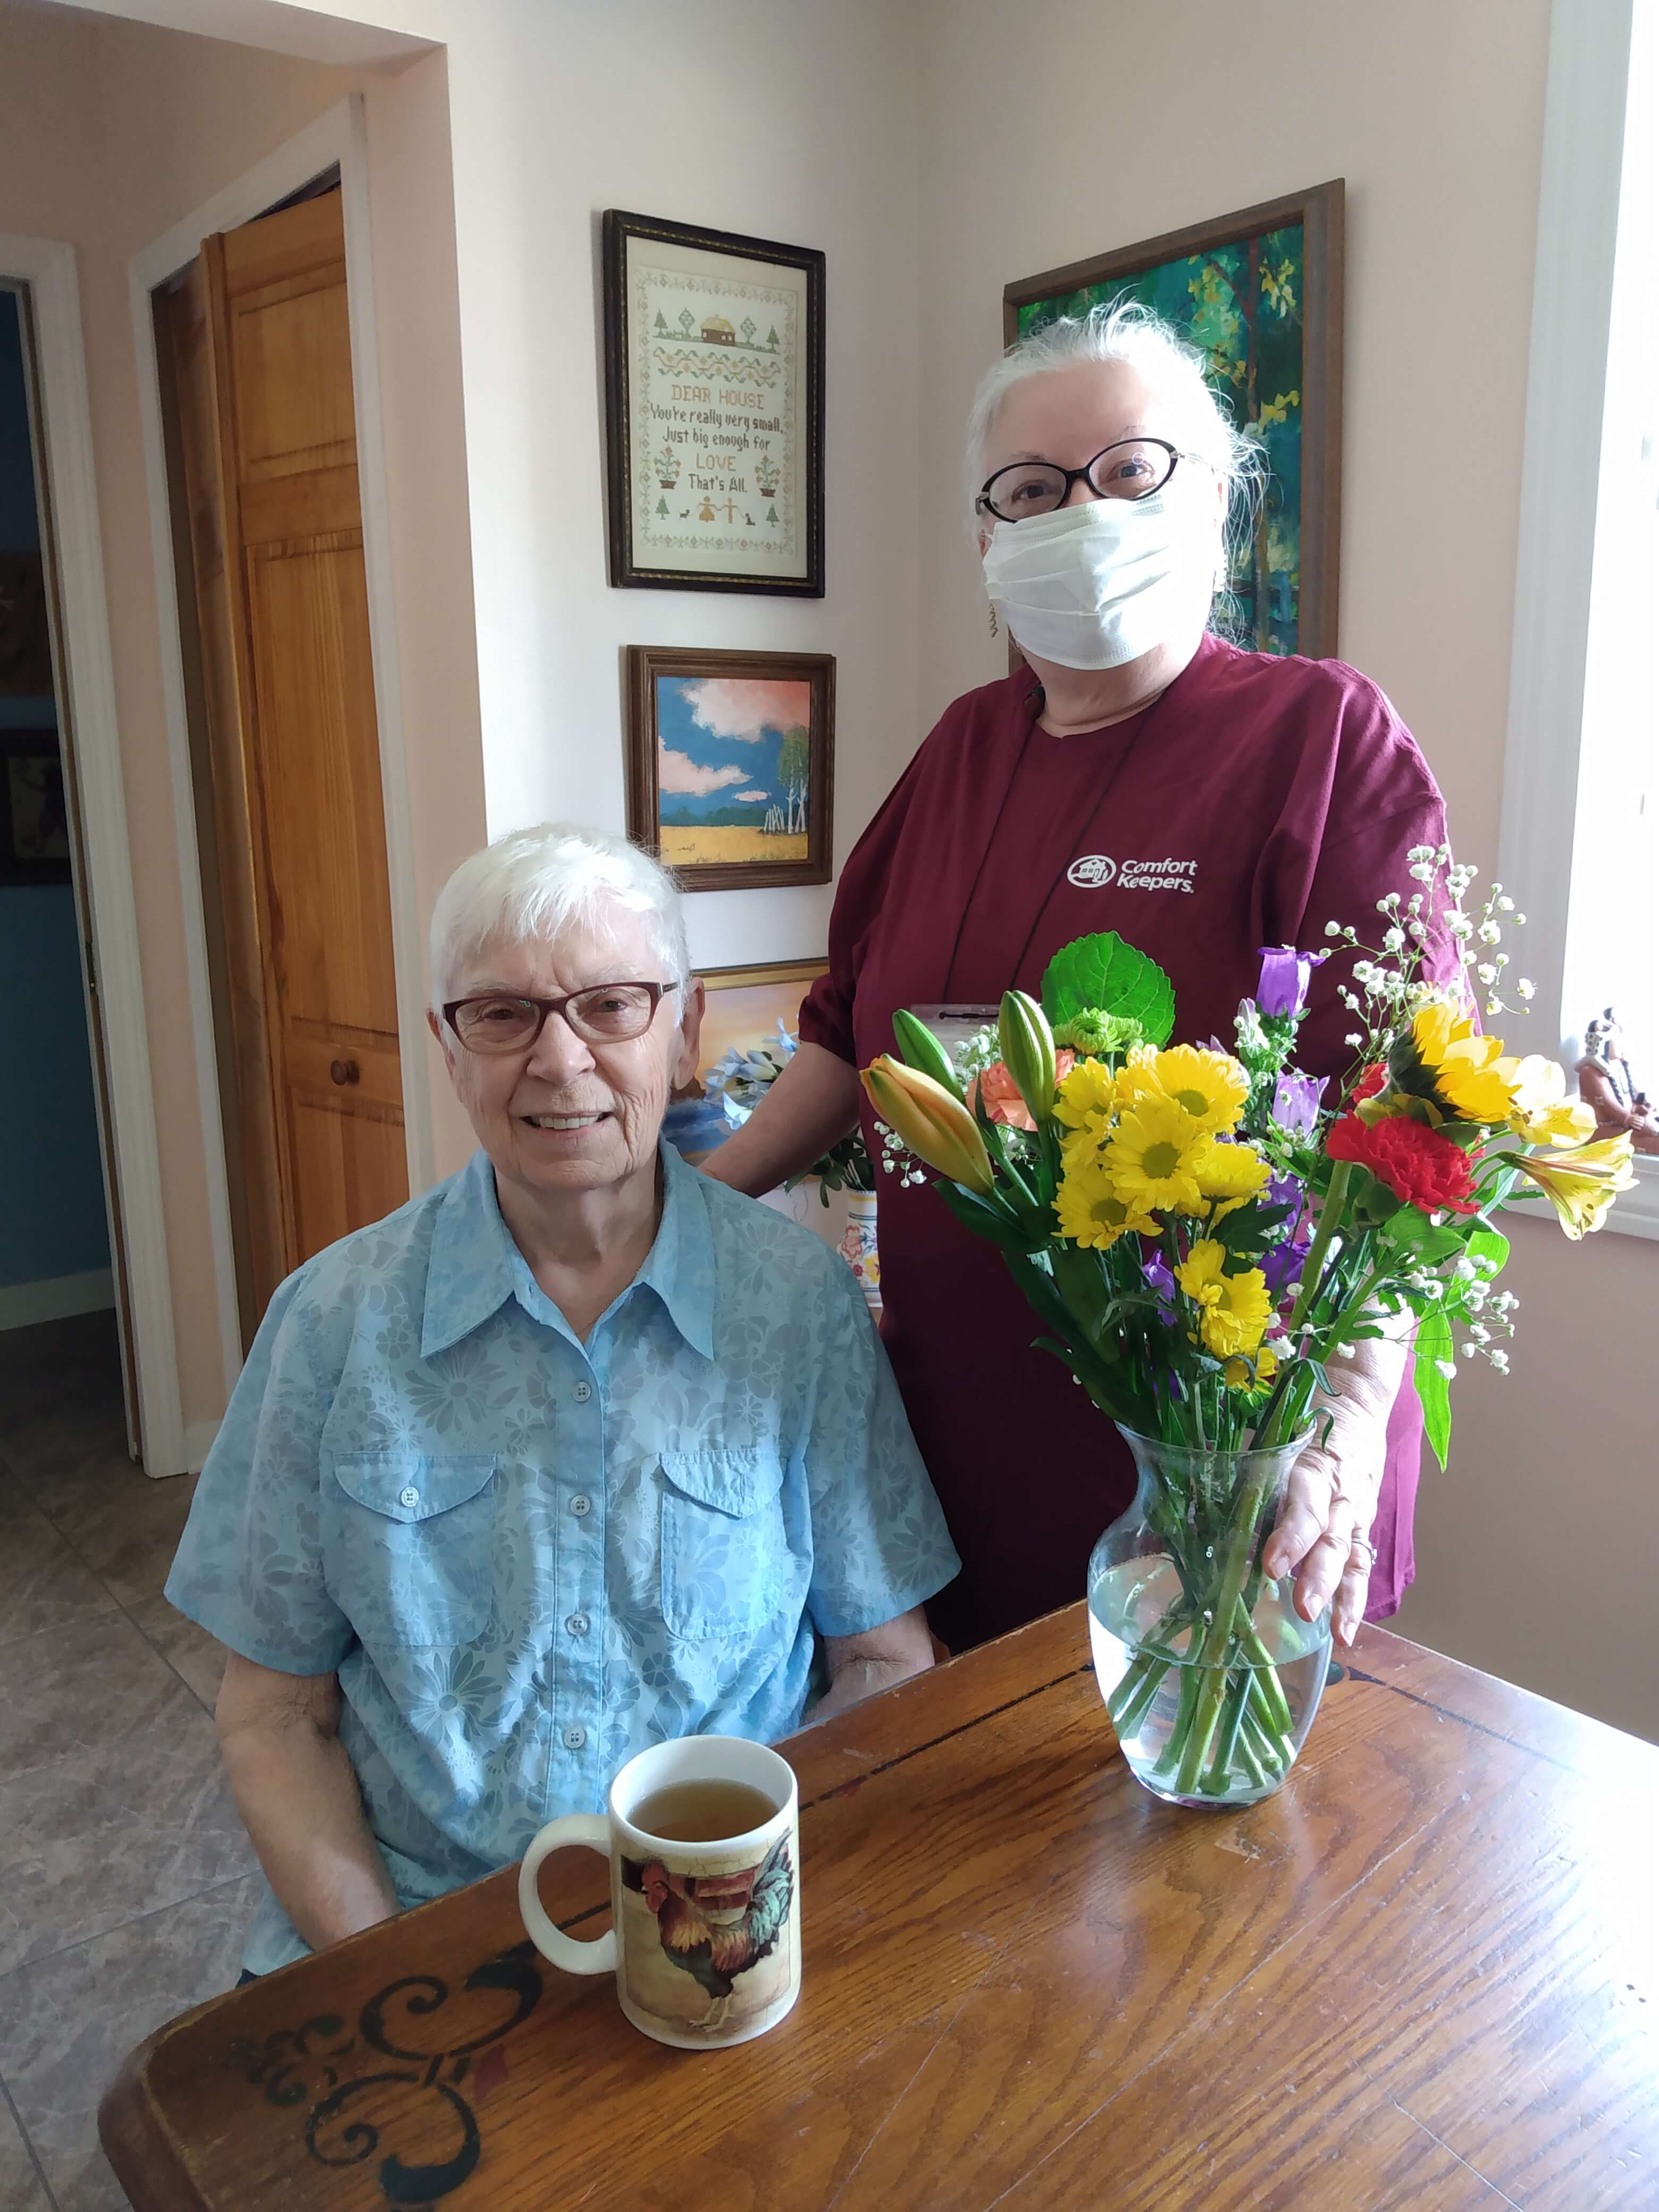 Caregiver and senior smiling for the camera next to a vase of flowers